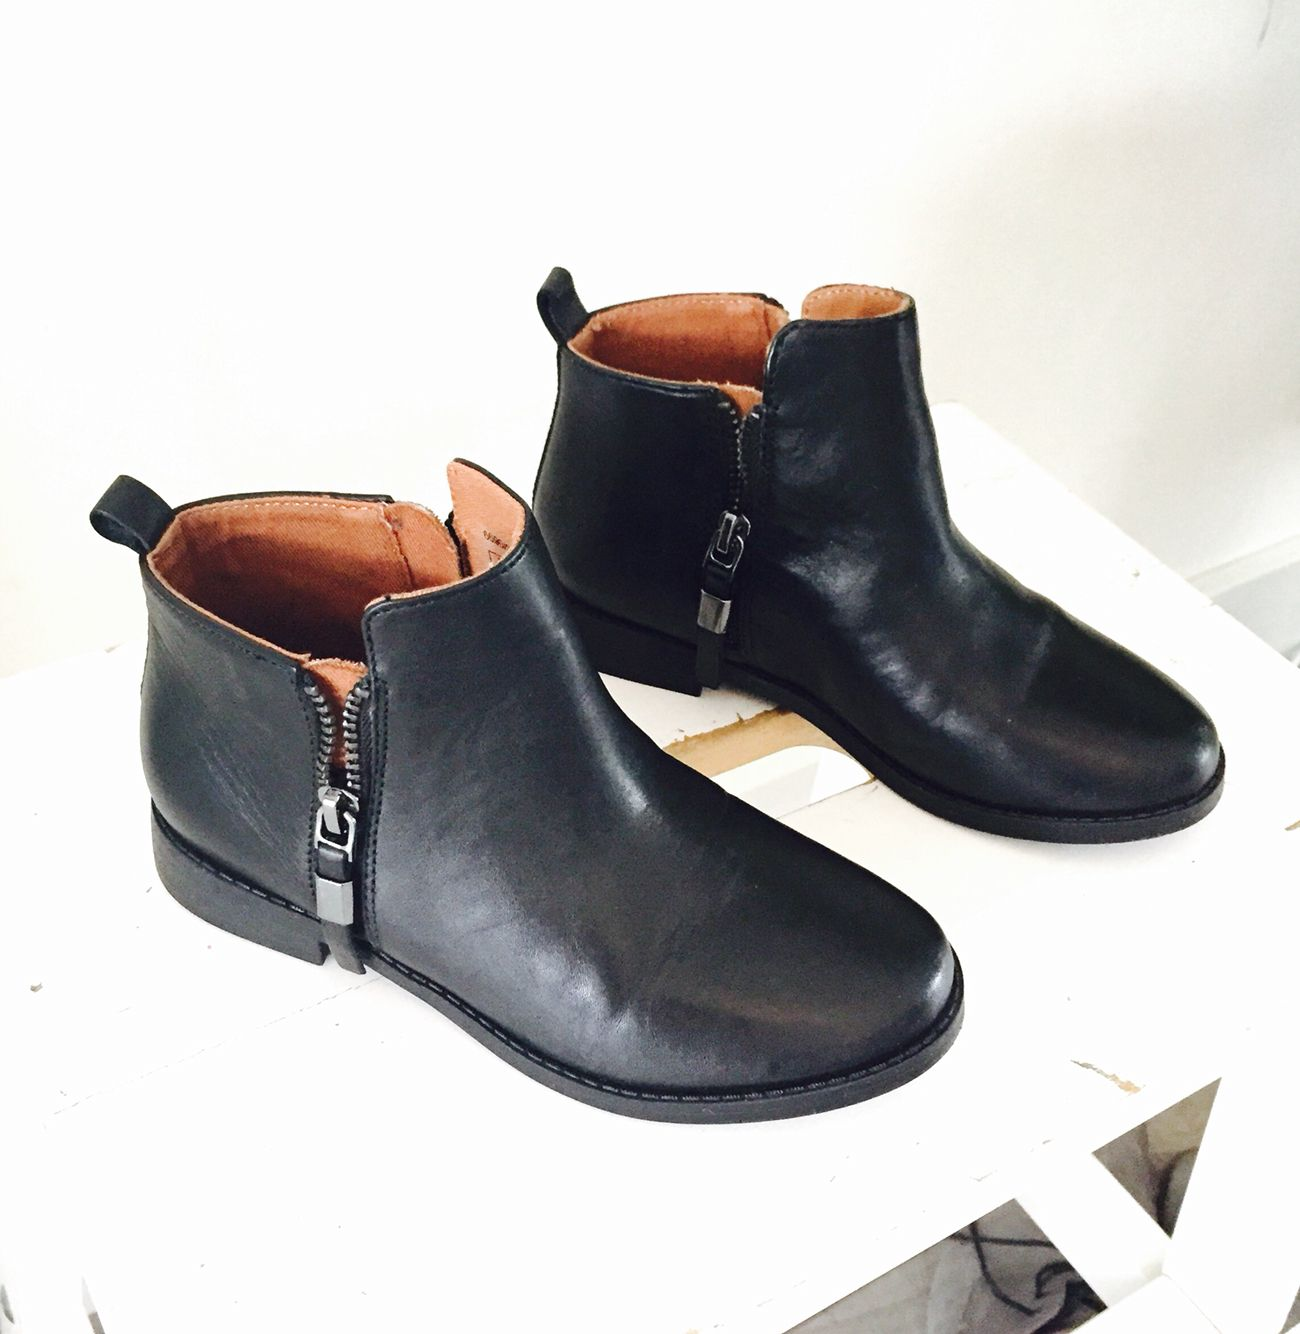 Zara shoes girls collection fall winter 2015 black boots